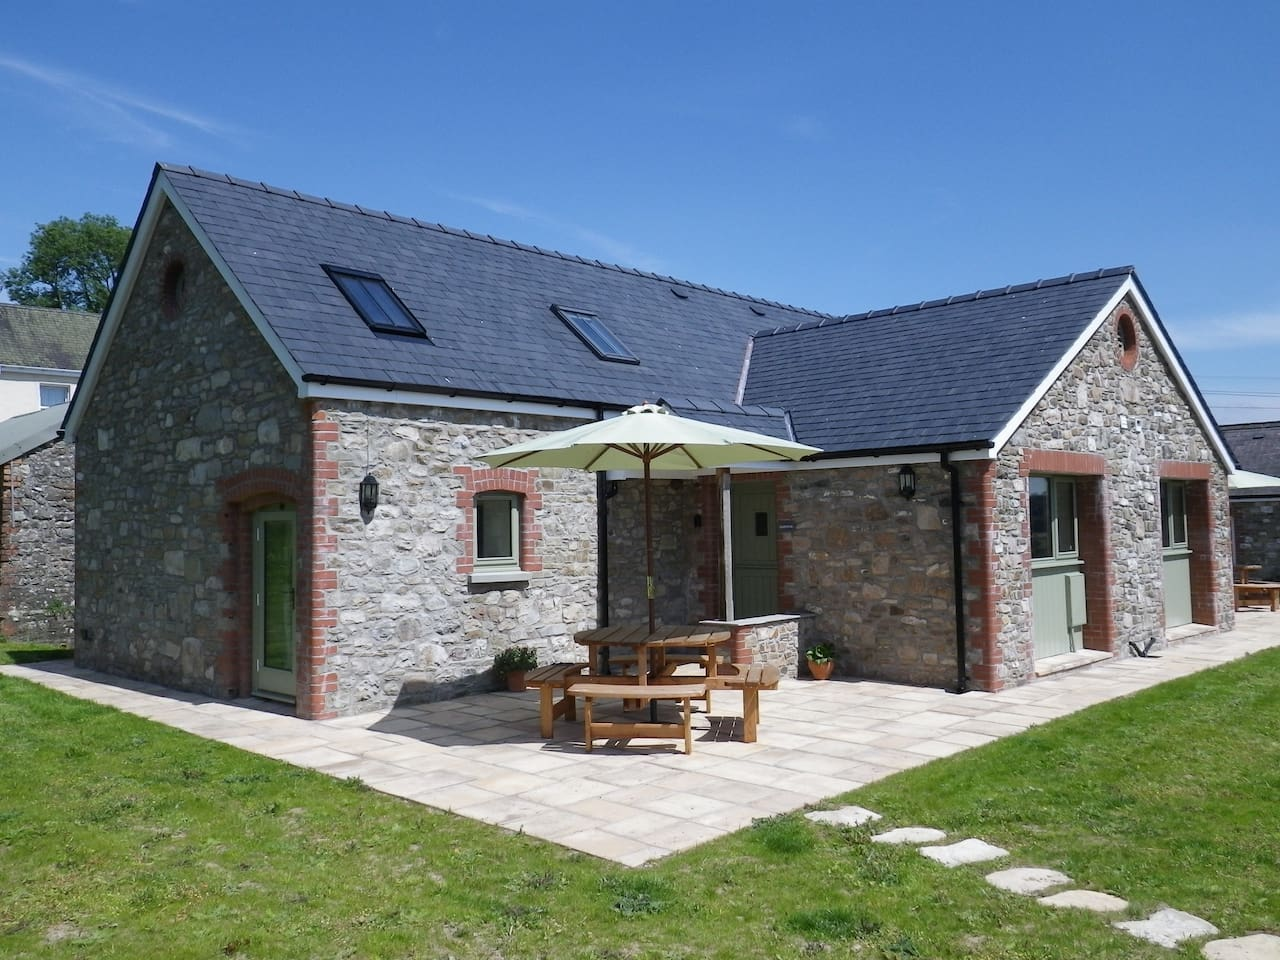 Gwennol Cottage @ Golden Grove Cottages is a stone built, cosy and welcoming barn conversion.